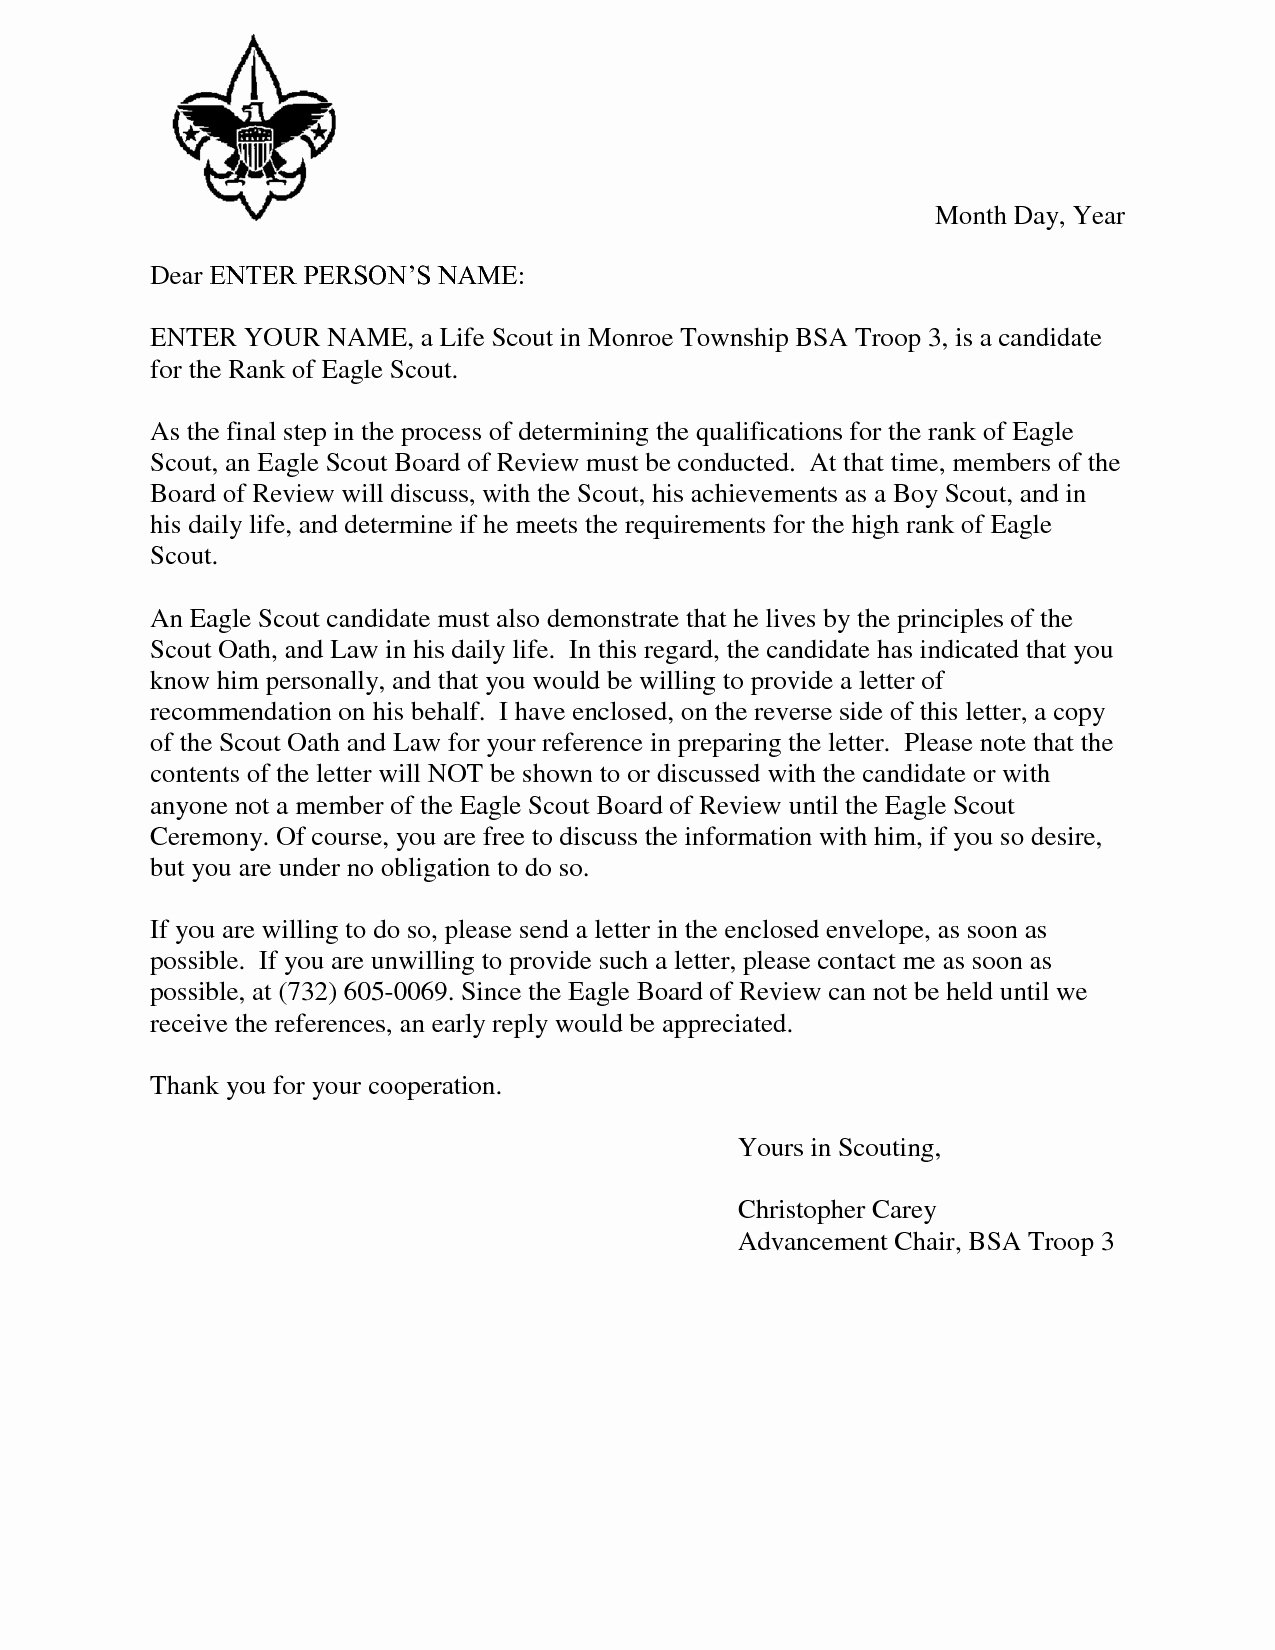 Eagle Scout Recommendation Letter Template Fresh Boy Scout Donation Letter Template Samples